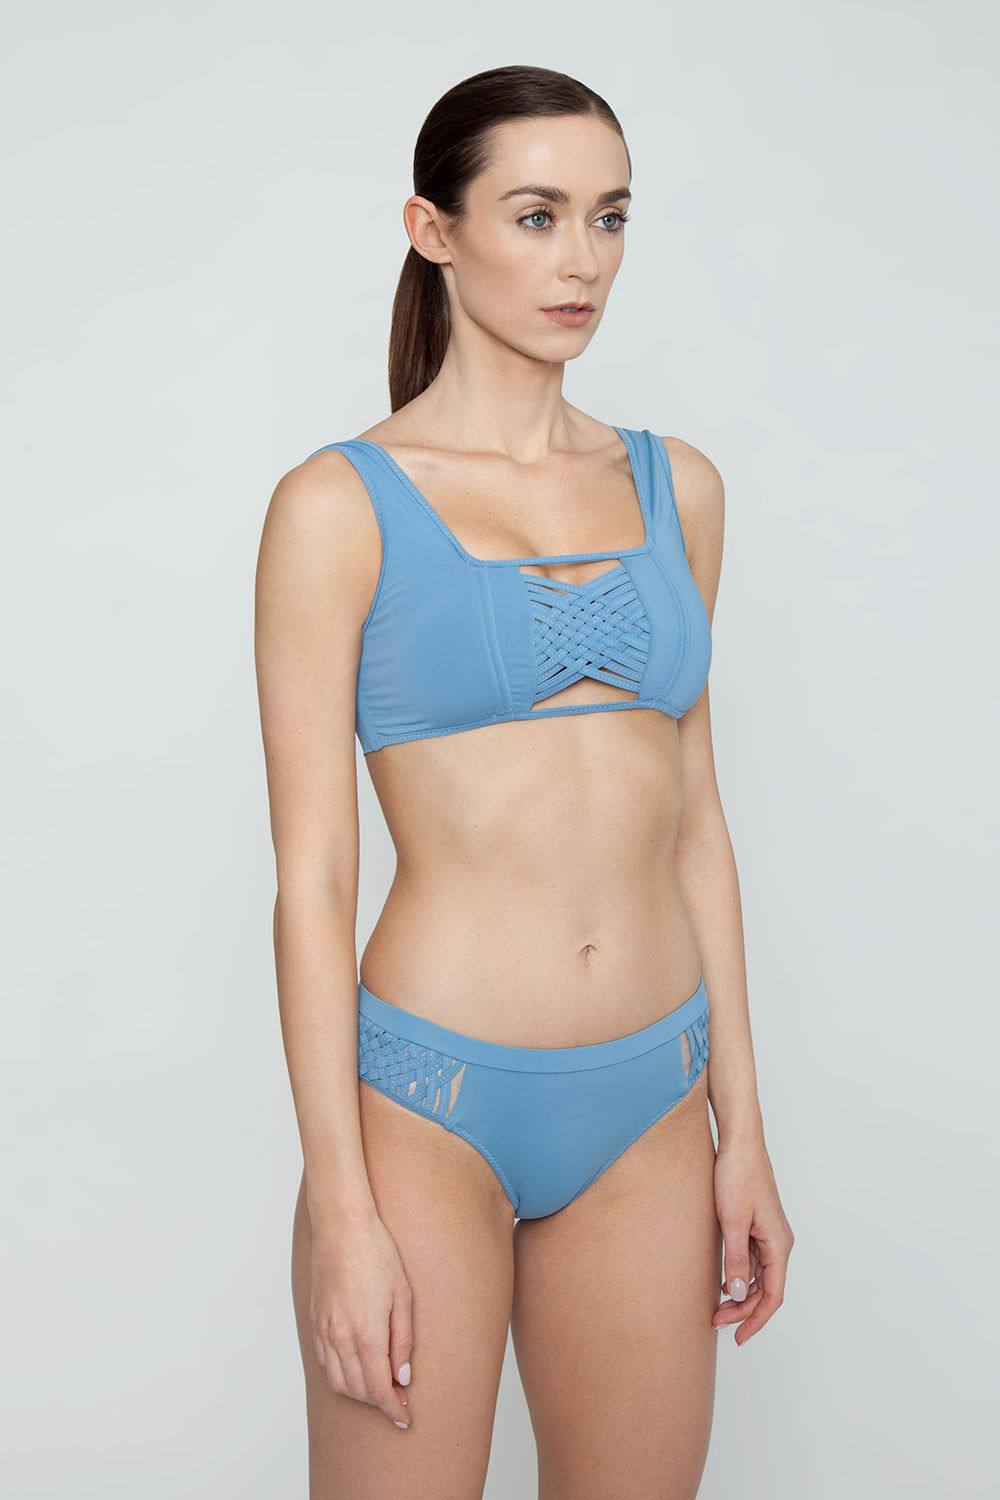 CLUBE BOSSA Perle Weaving Hipster Bikini Bottom - Riviera Blue Bikini Bottom | Riviera Blue| Clube Bossa Perle Weaving Hipster Bikini Bottom - Riviera Blue Features:  Hipster  Cheeky-moderate coverage  Side weaving detail Side View